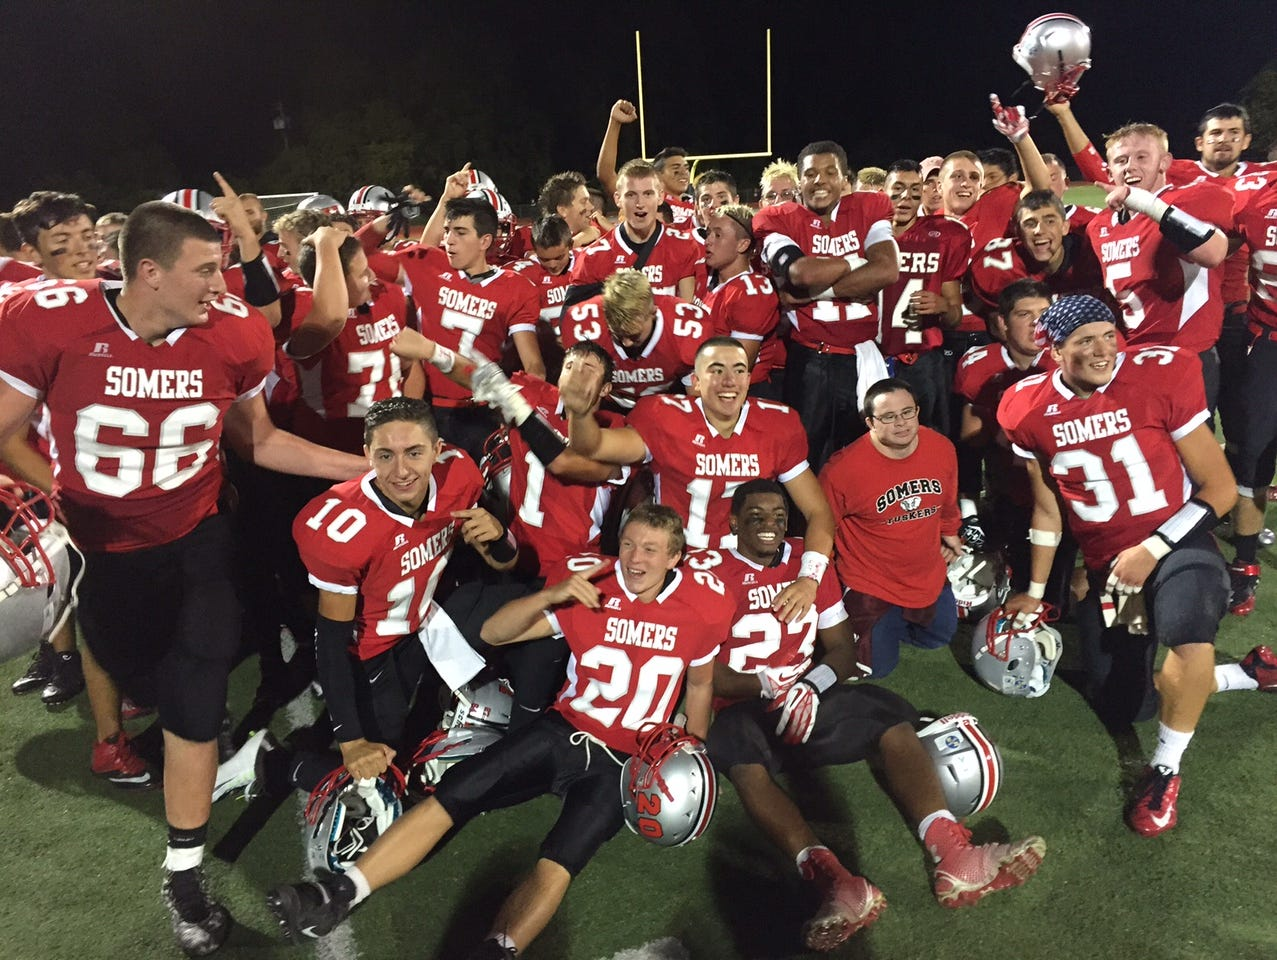 Somers players celebrate their 38-21 win over Yorktown Friday, Sept. 25, 2015.